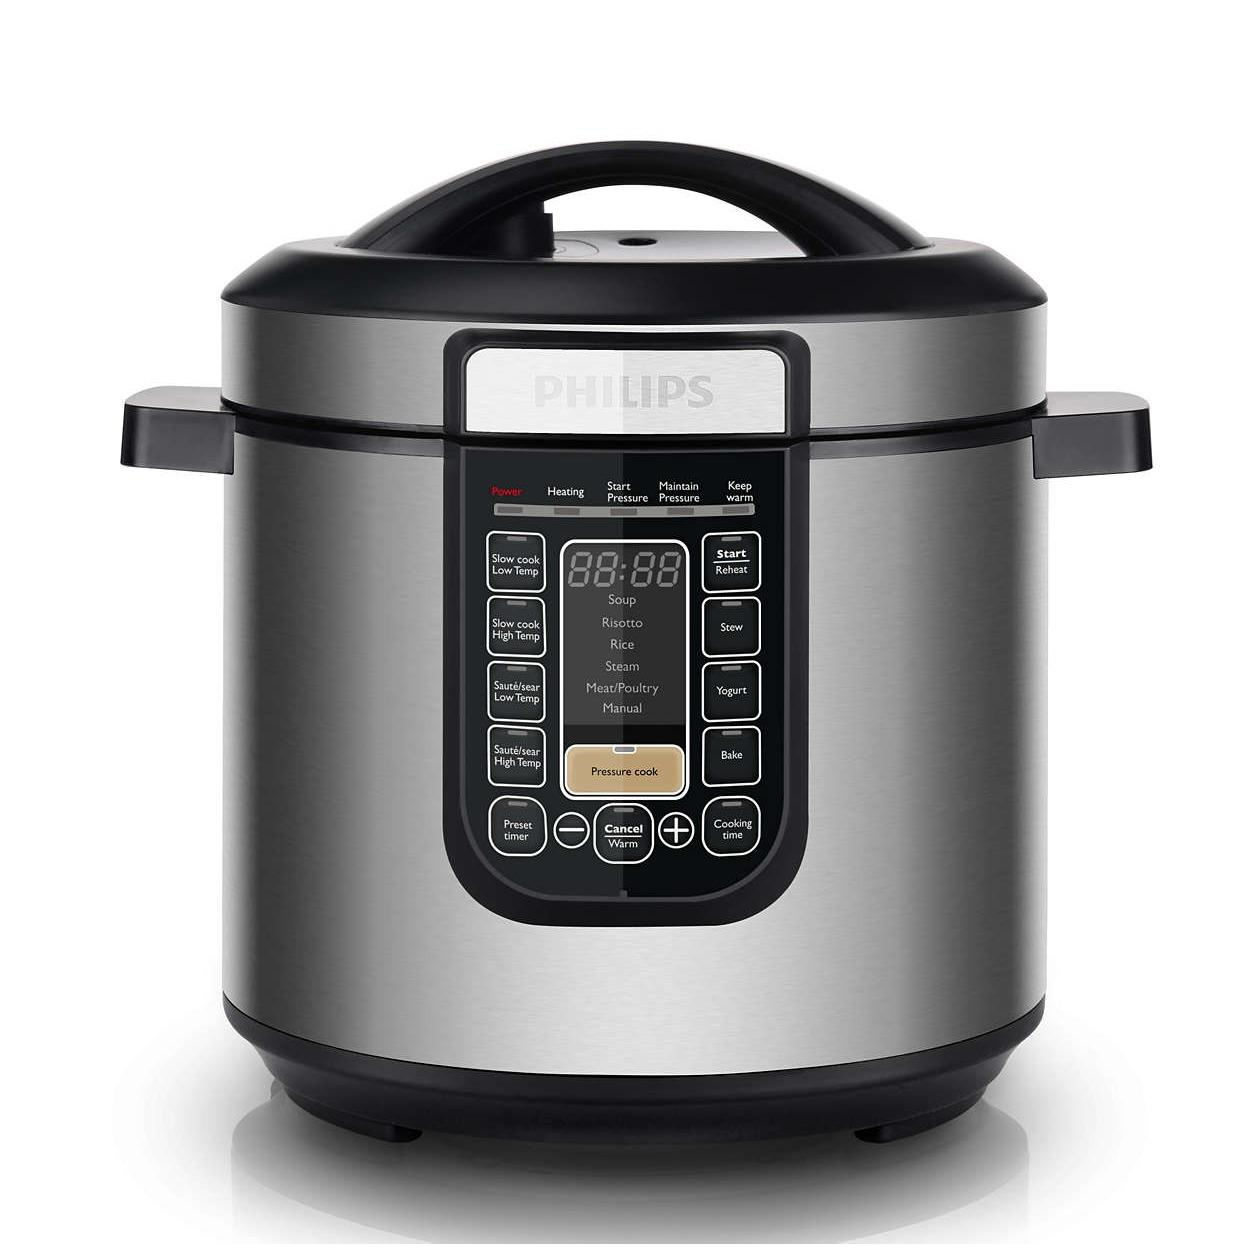 Philips Hd2137 62 Viva Collection All In One Cooker Shop